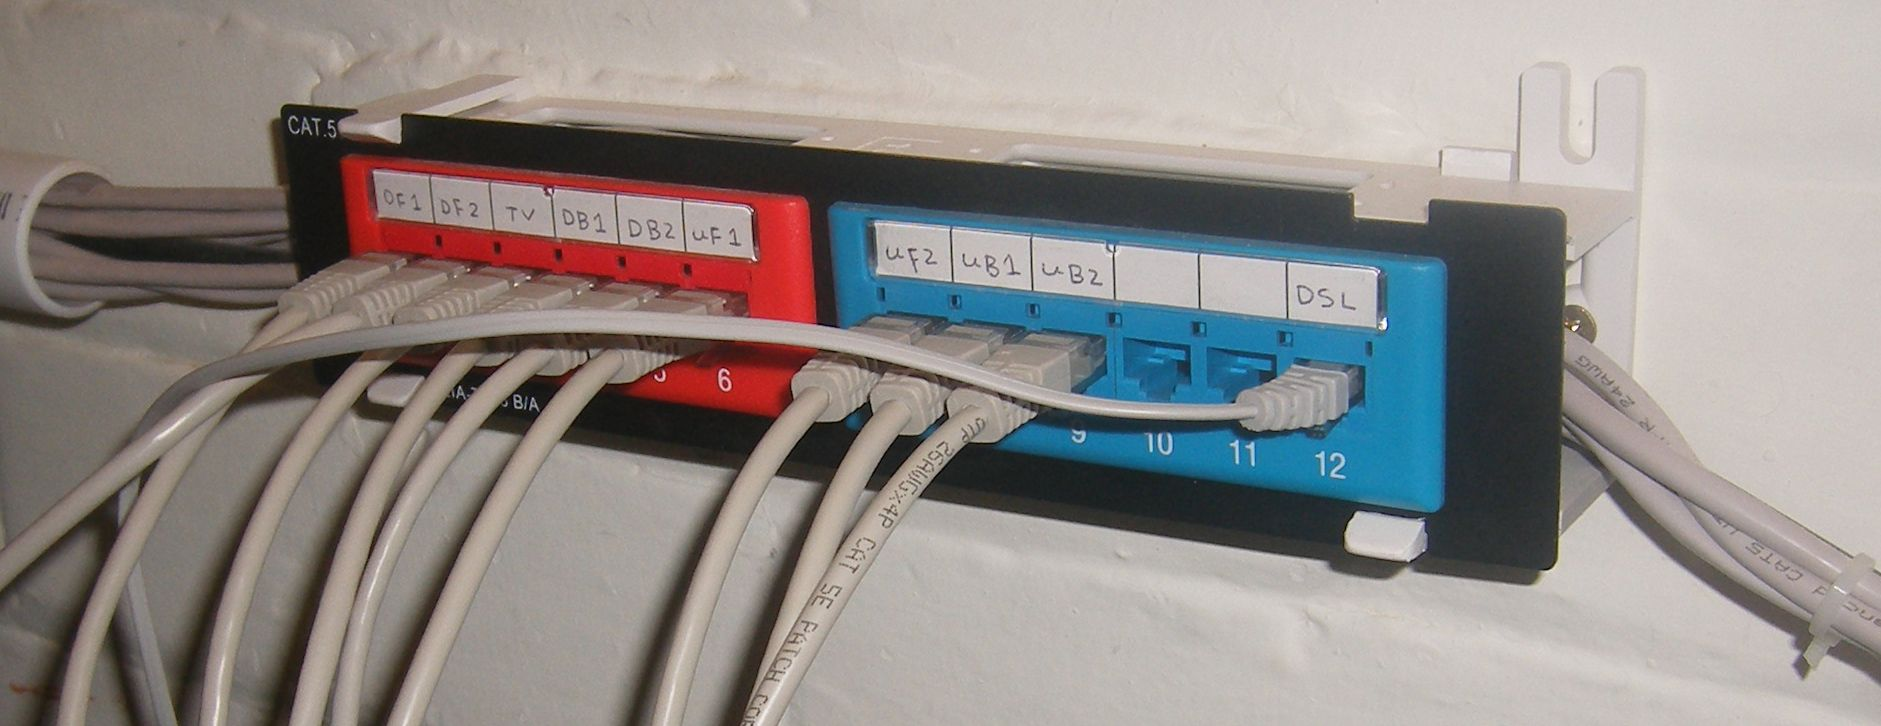 small resolution of cat 6a patch panel wiring diagrams